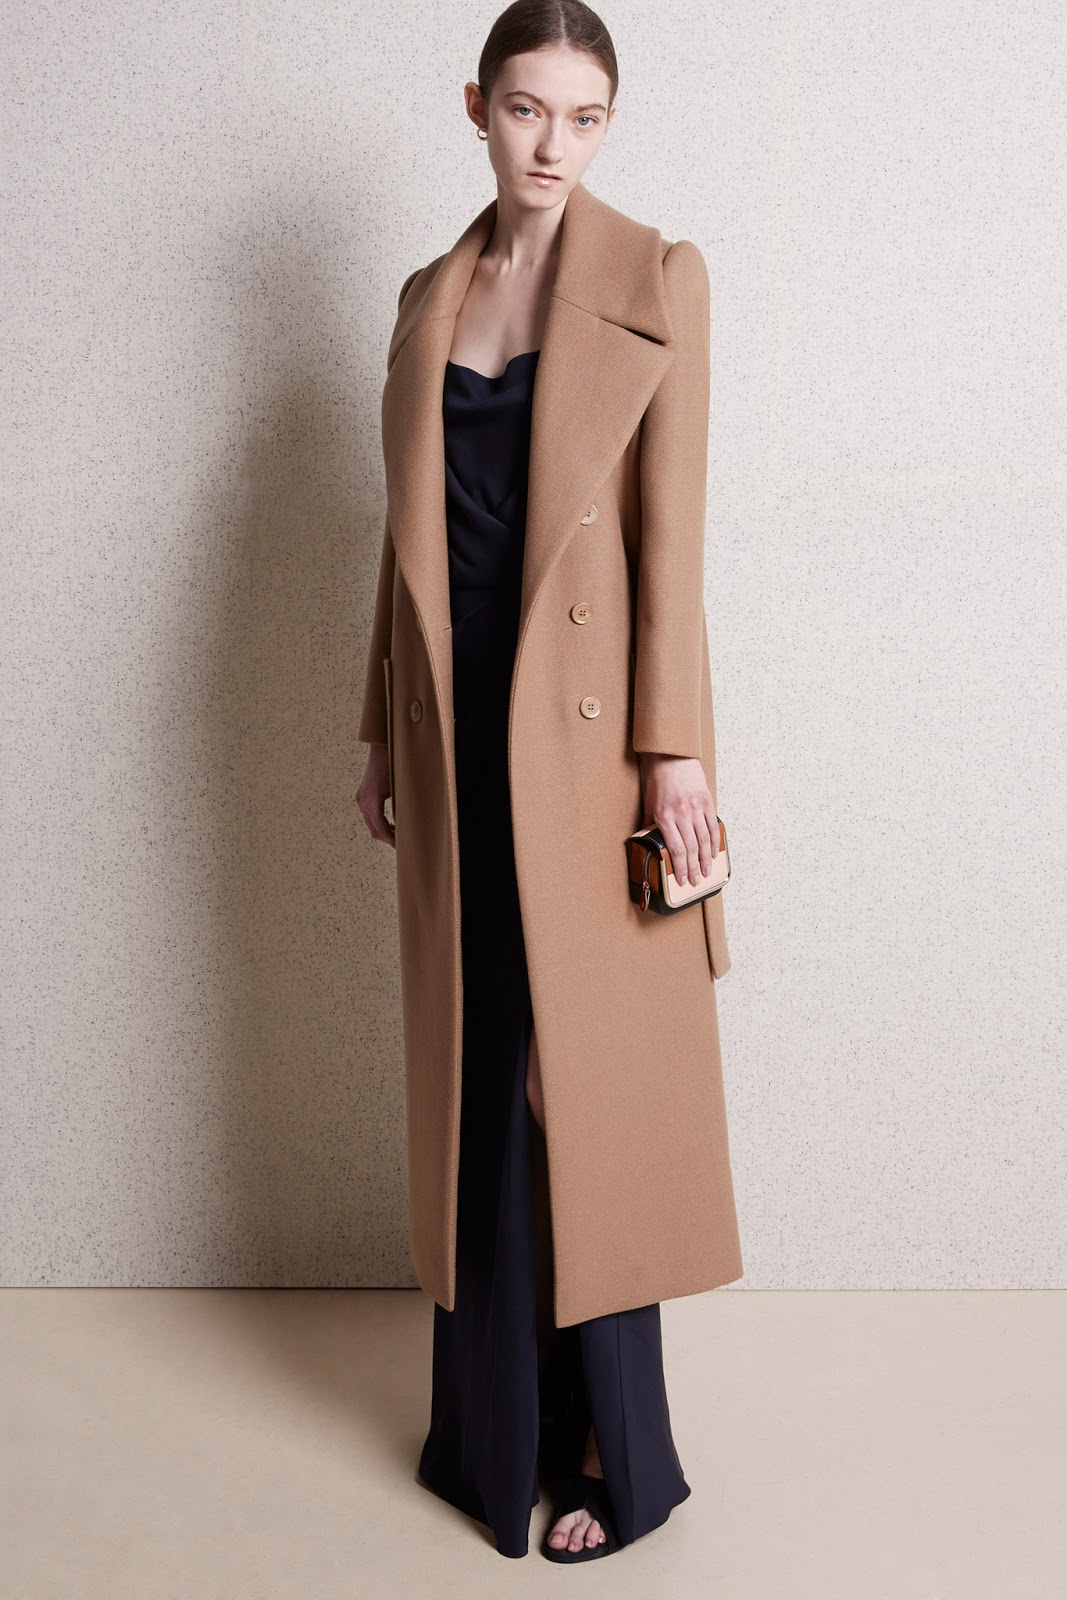 via fashioned by love | Carven Pre-Fall 2015 | camel trends | 2015